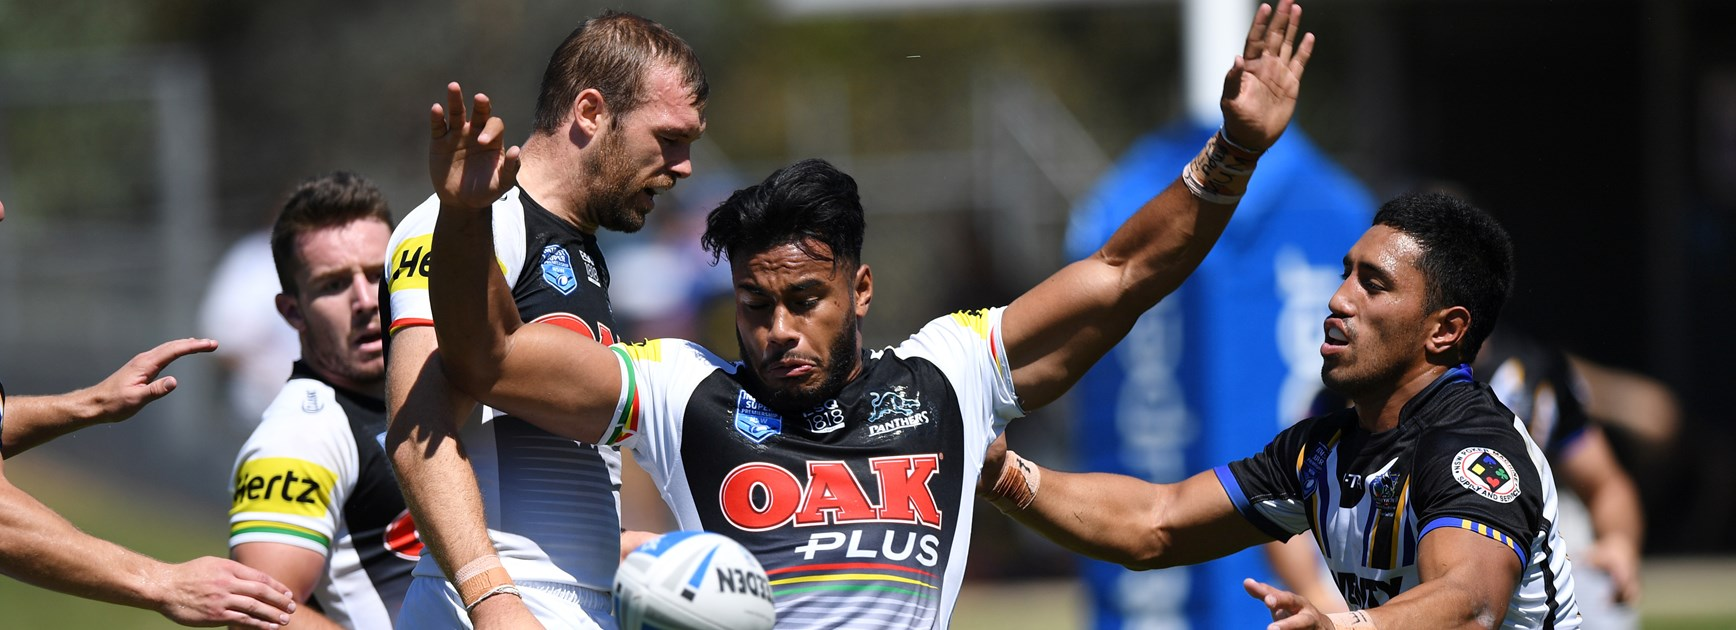 Slow start costs error-prone Panthers